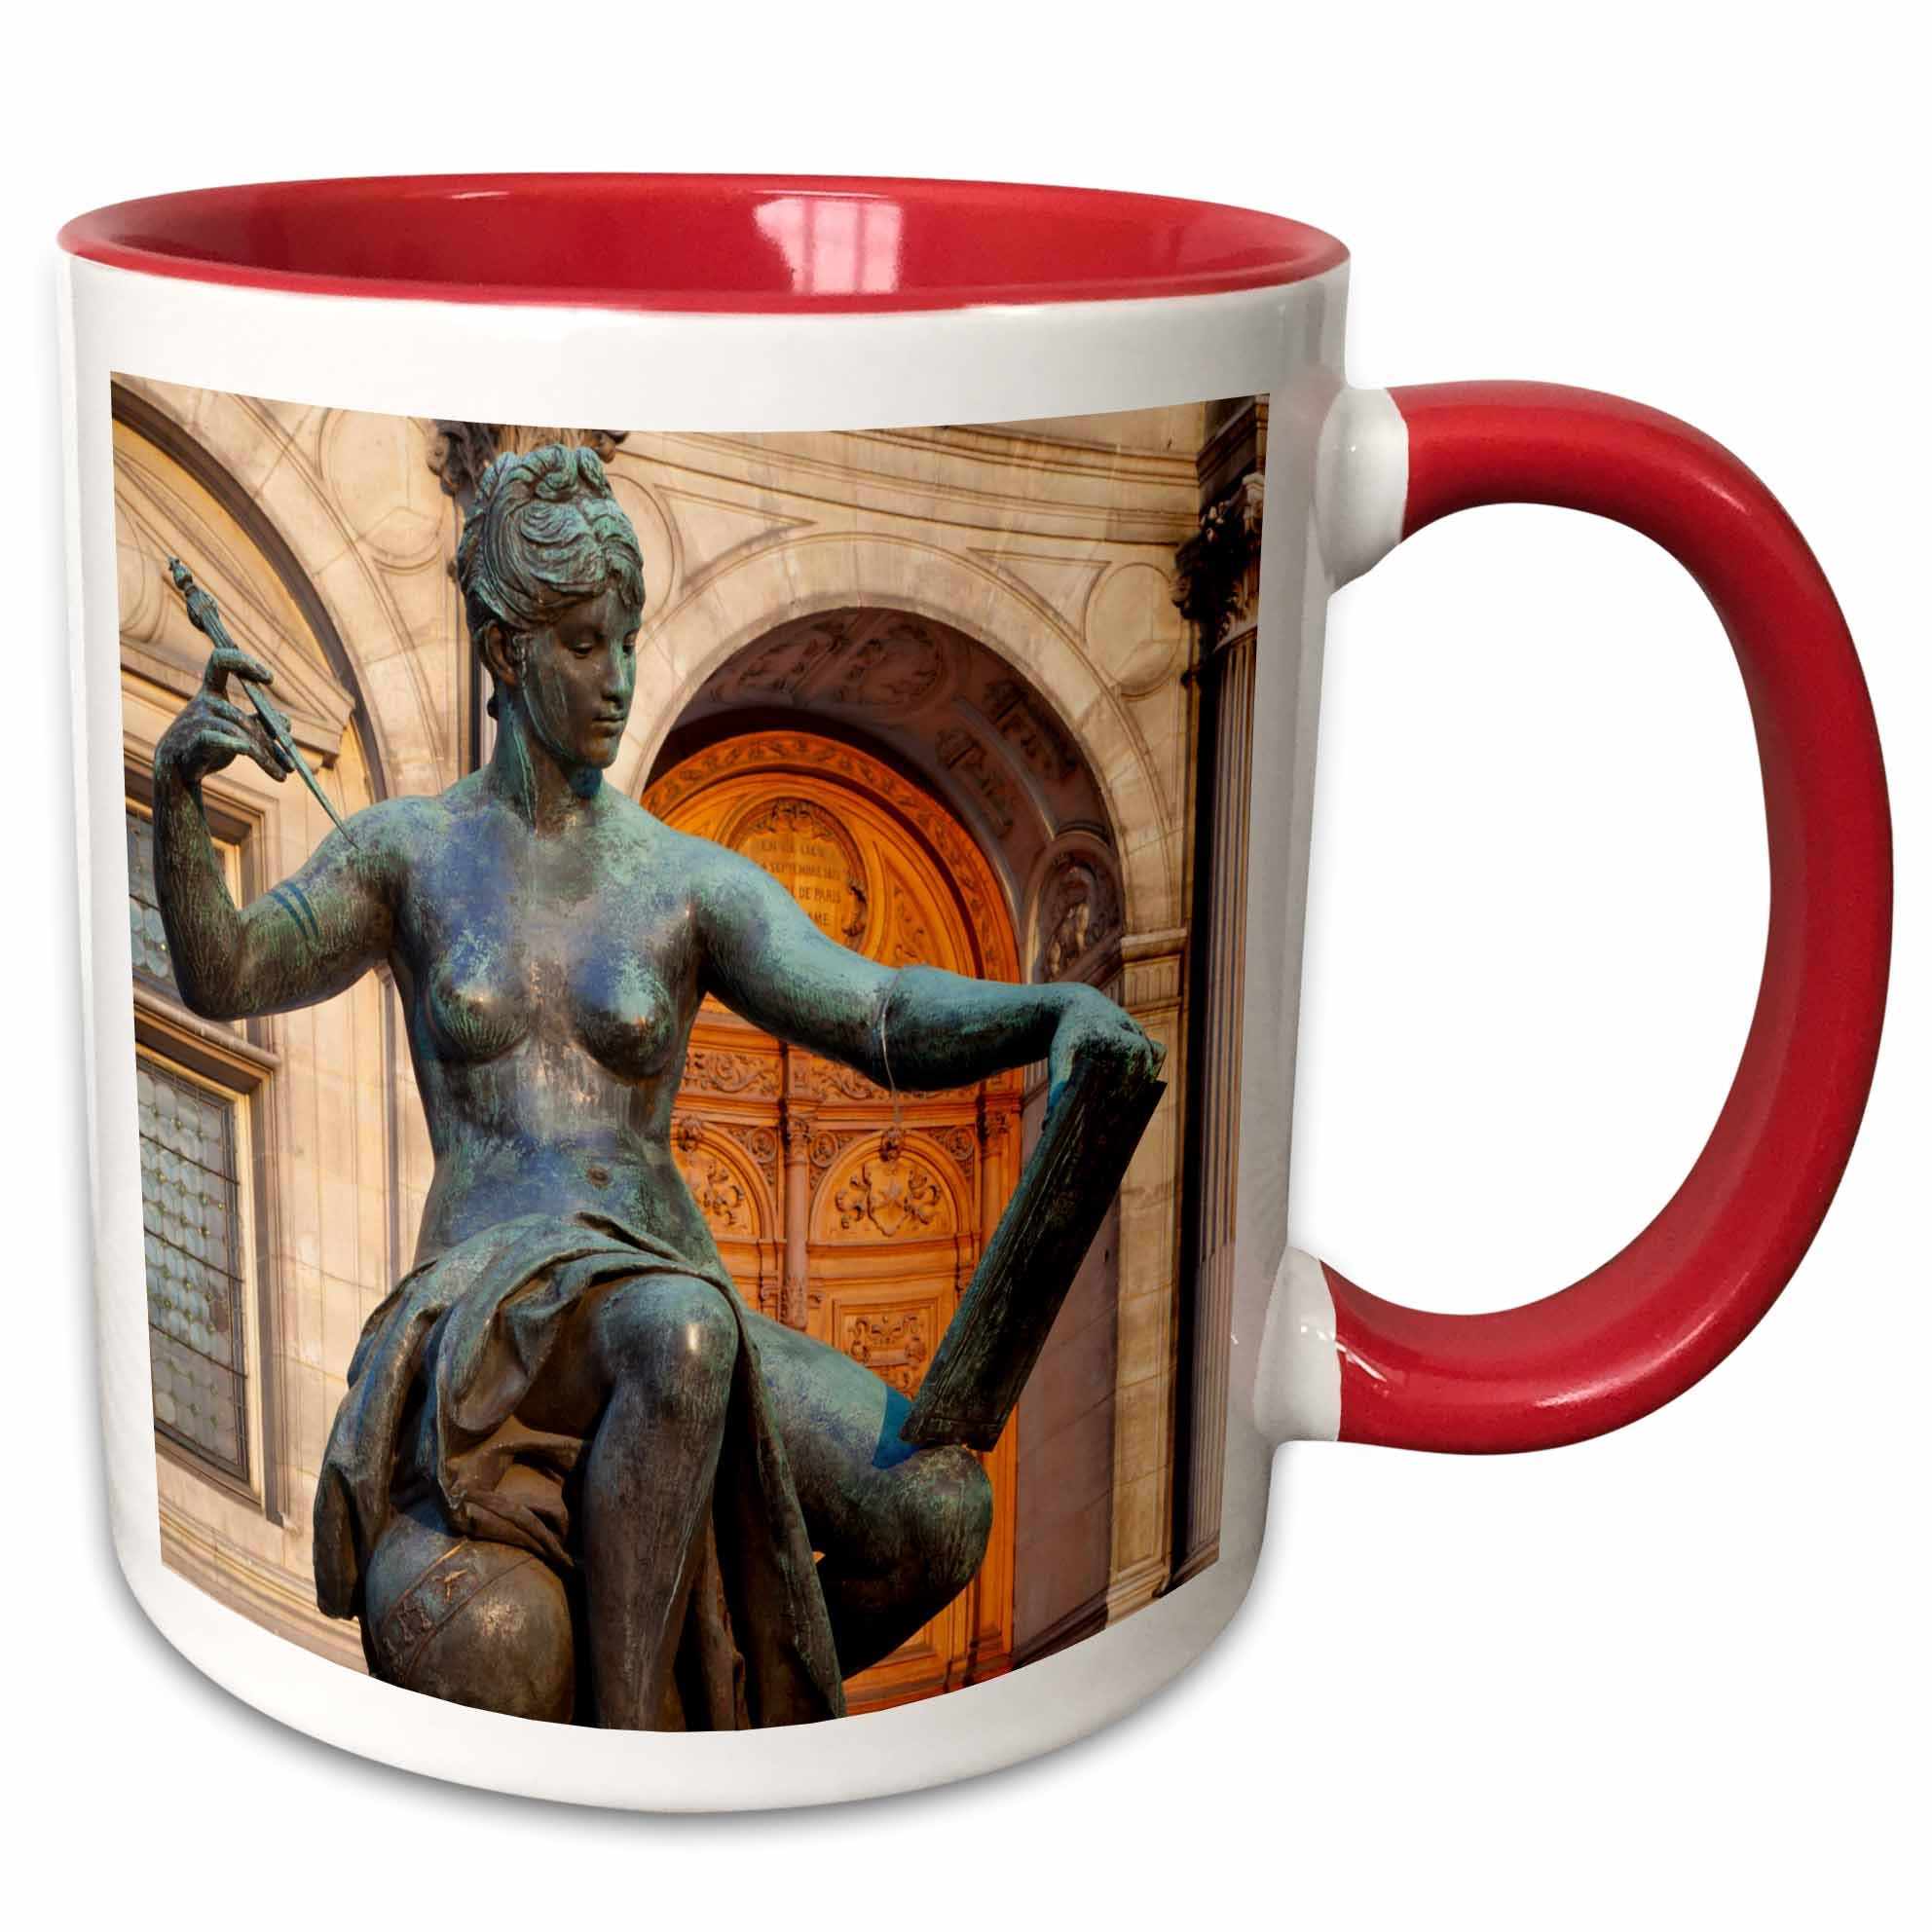 3dRose mug_187356_5 Allegorical Statue represents Science, Hotel de Ville, Paris, France - Two Tone Red Mug, 11oz